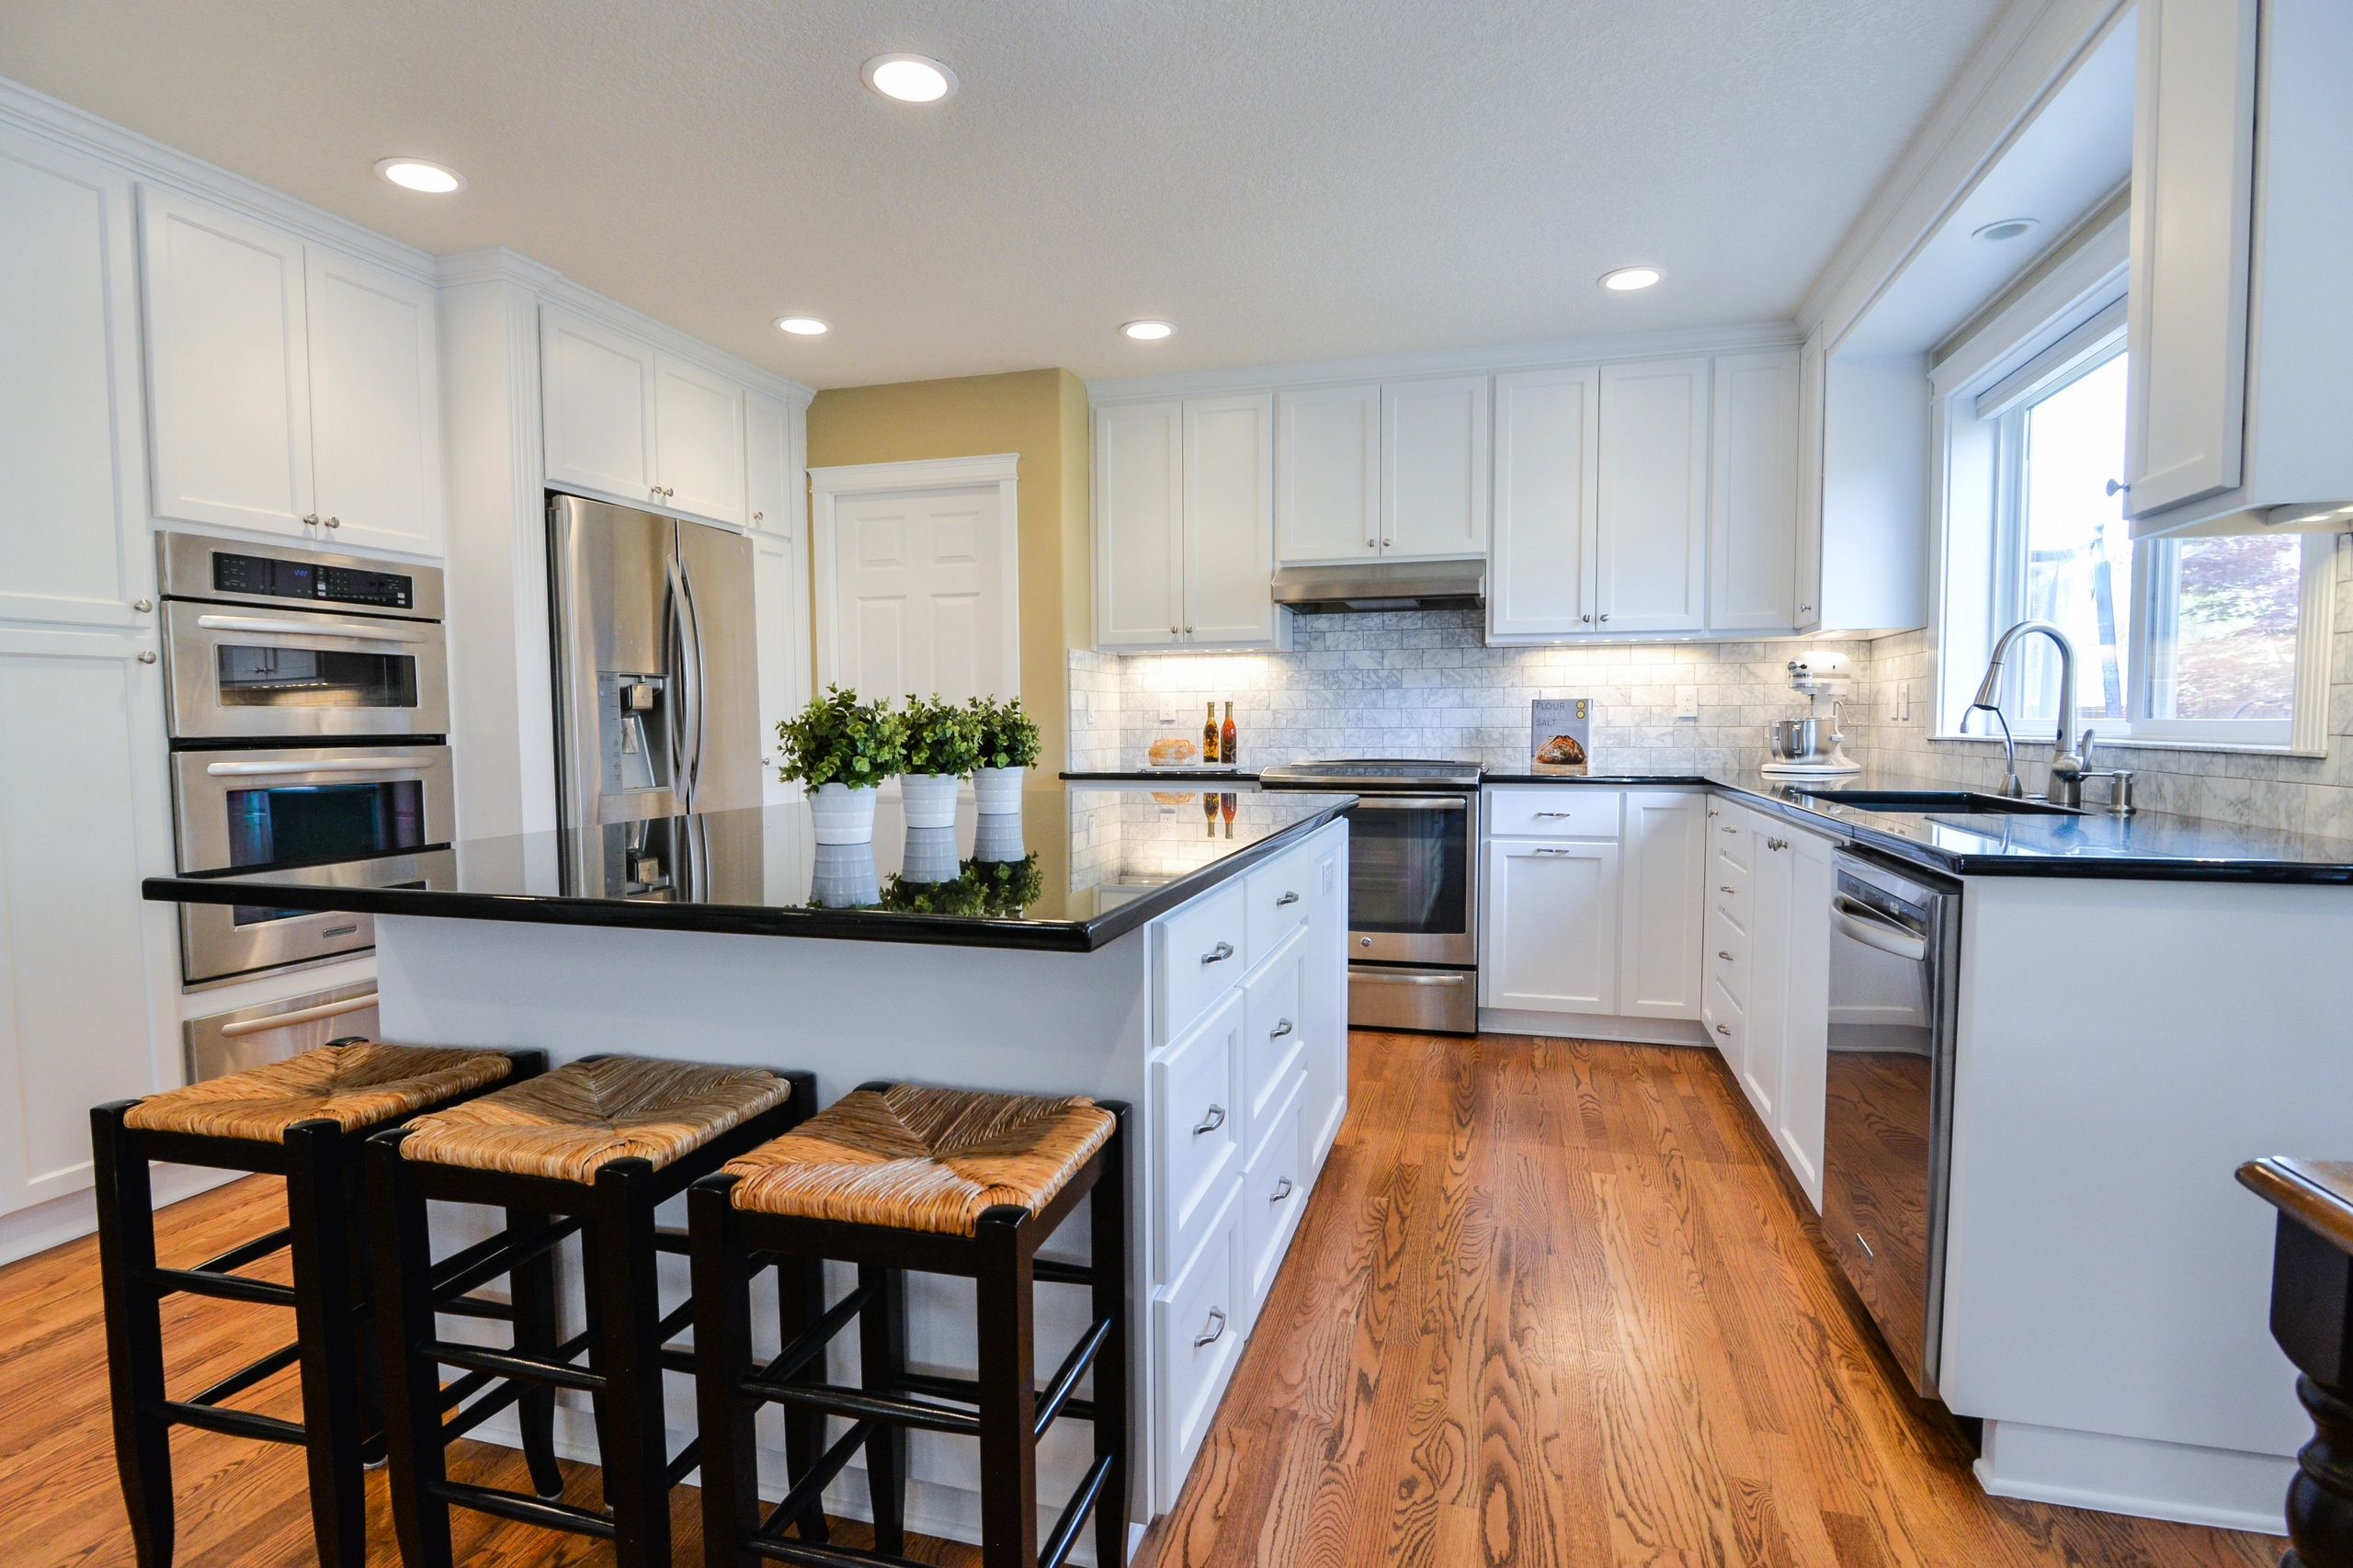 A Cut Above Woodworking - Kitchen Cabinets - Portland, Oregon